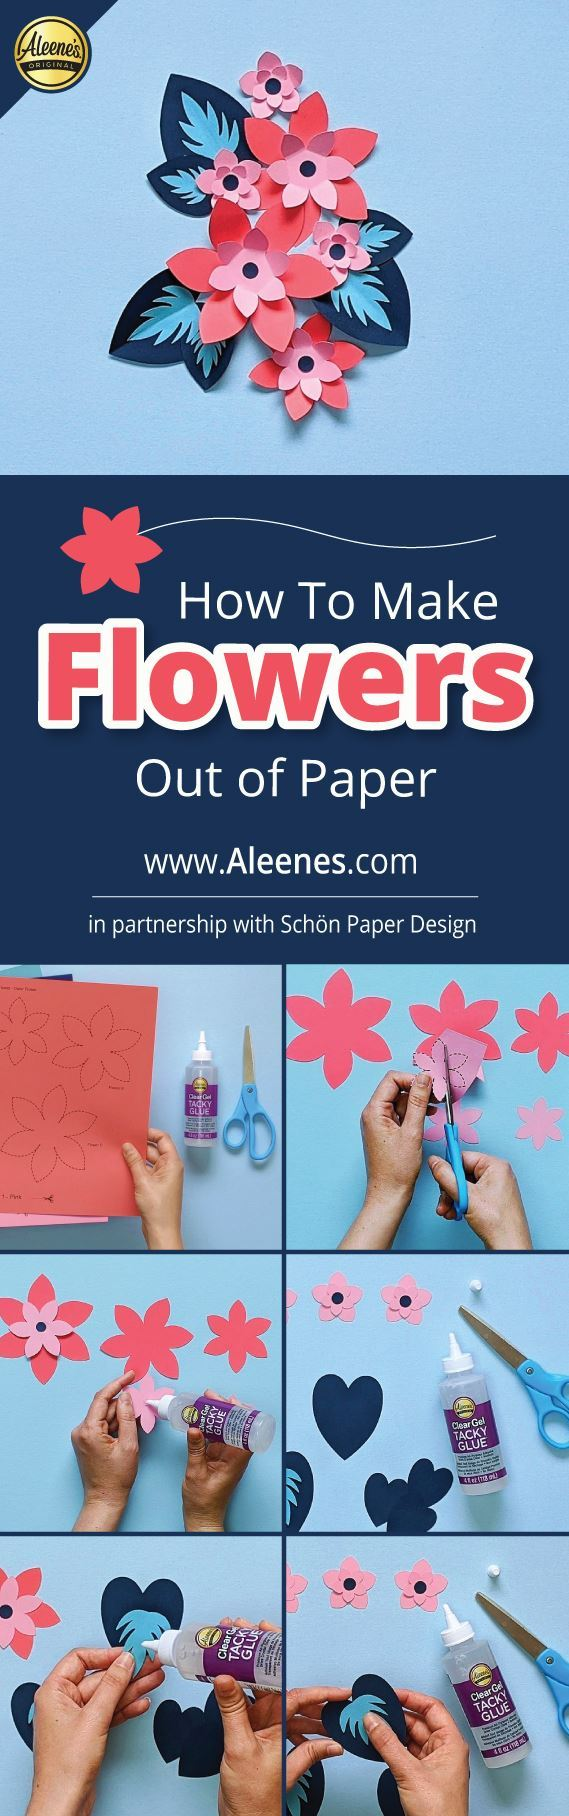 Aleene's How To Make Flowers Out of Paper